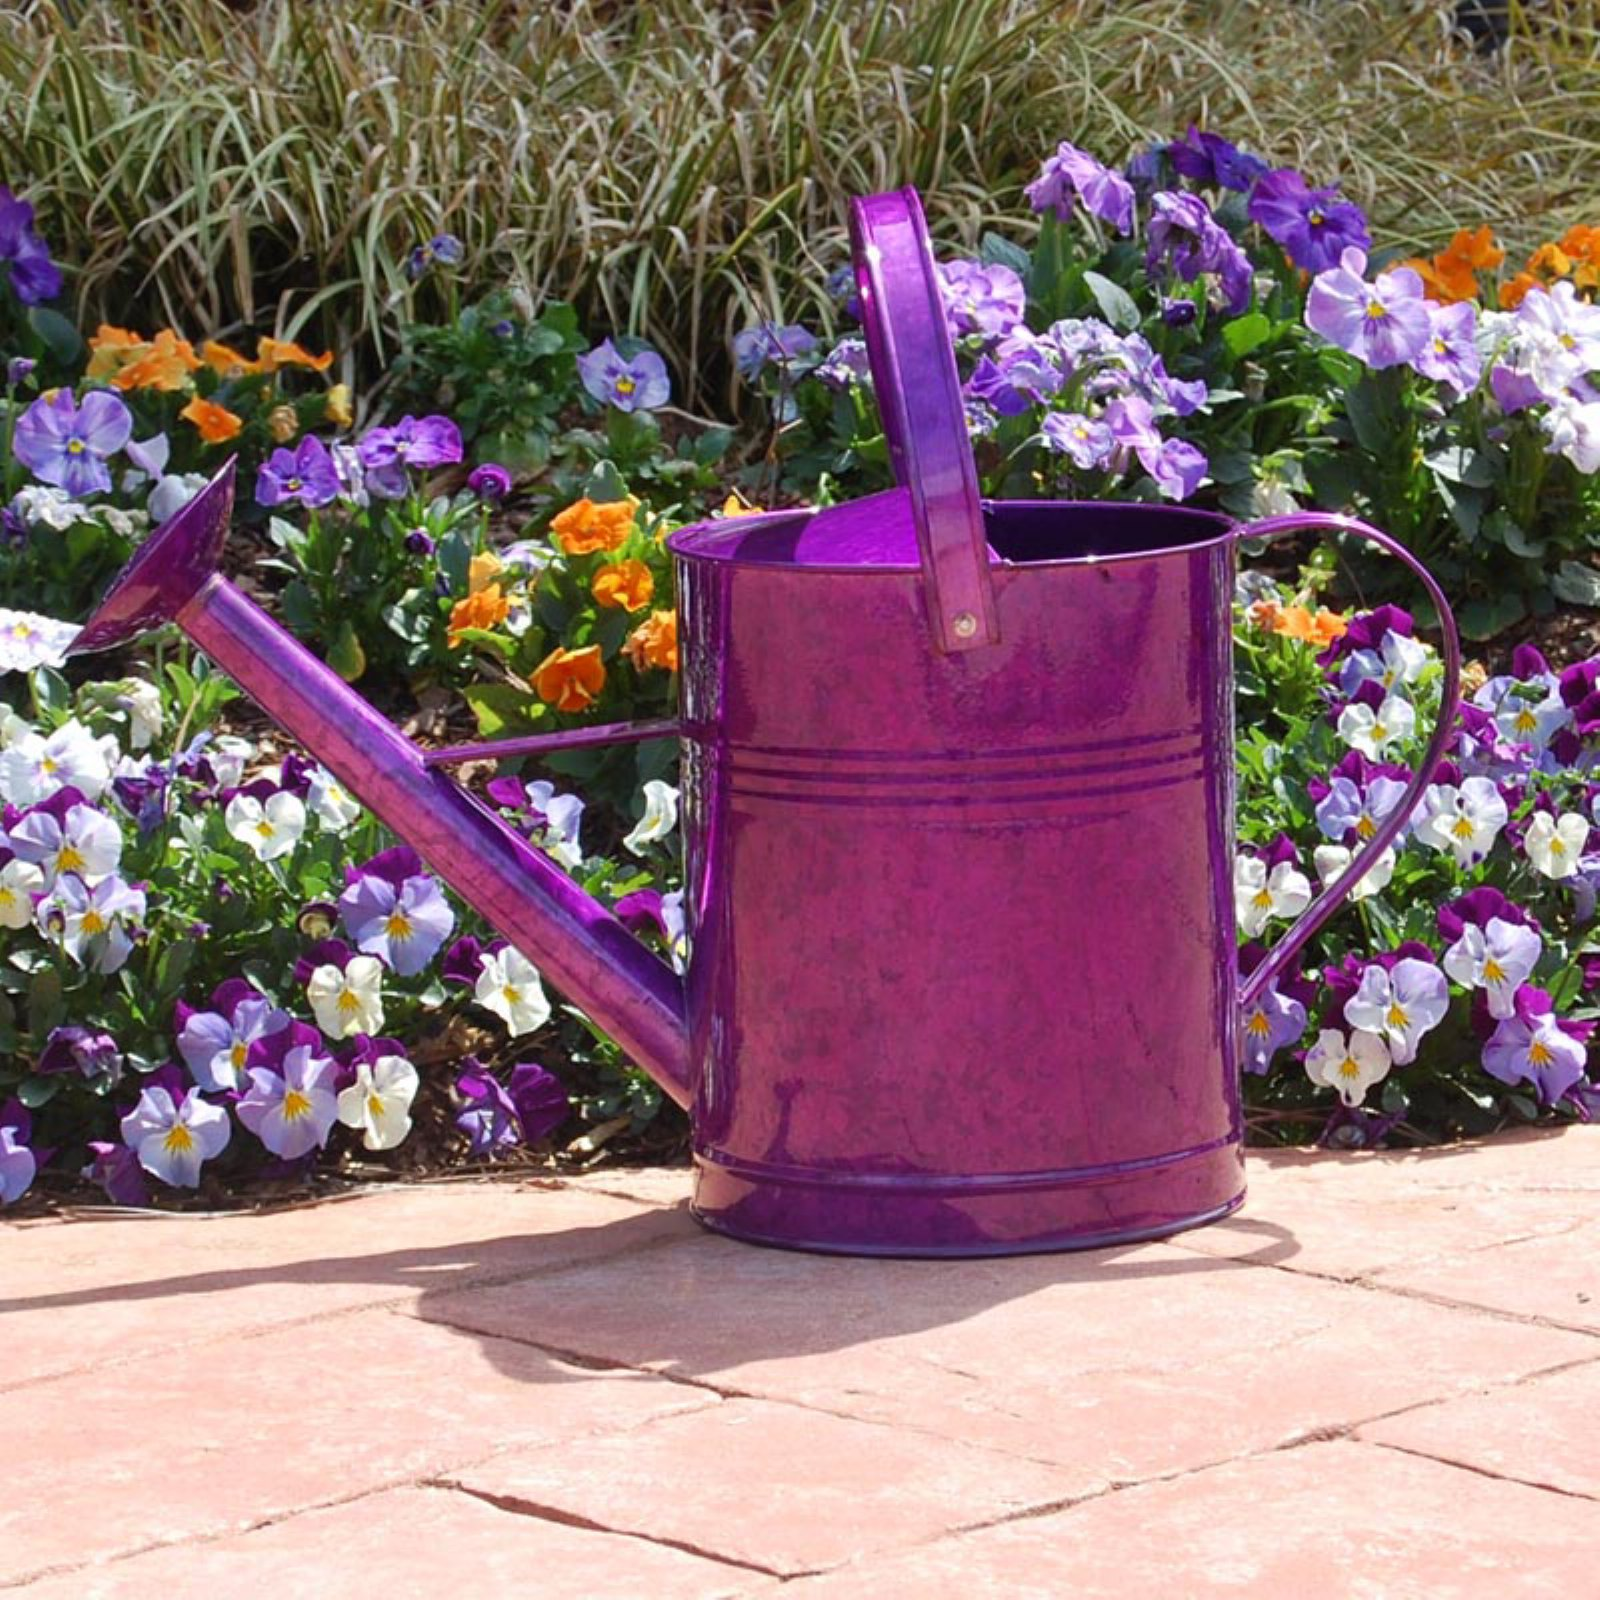 Austram-Griffith Creek Designs Metal Watering Can